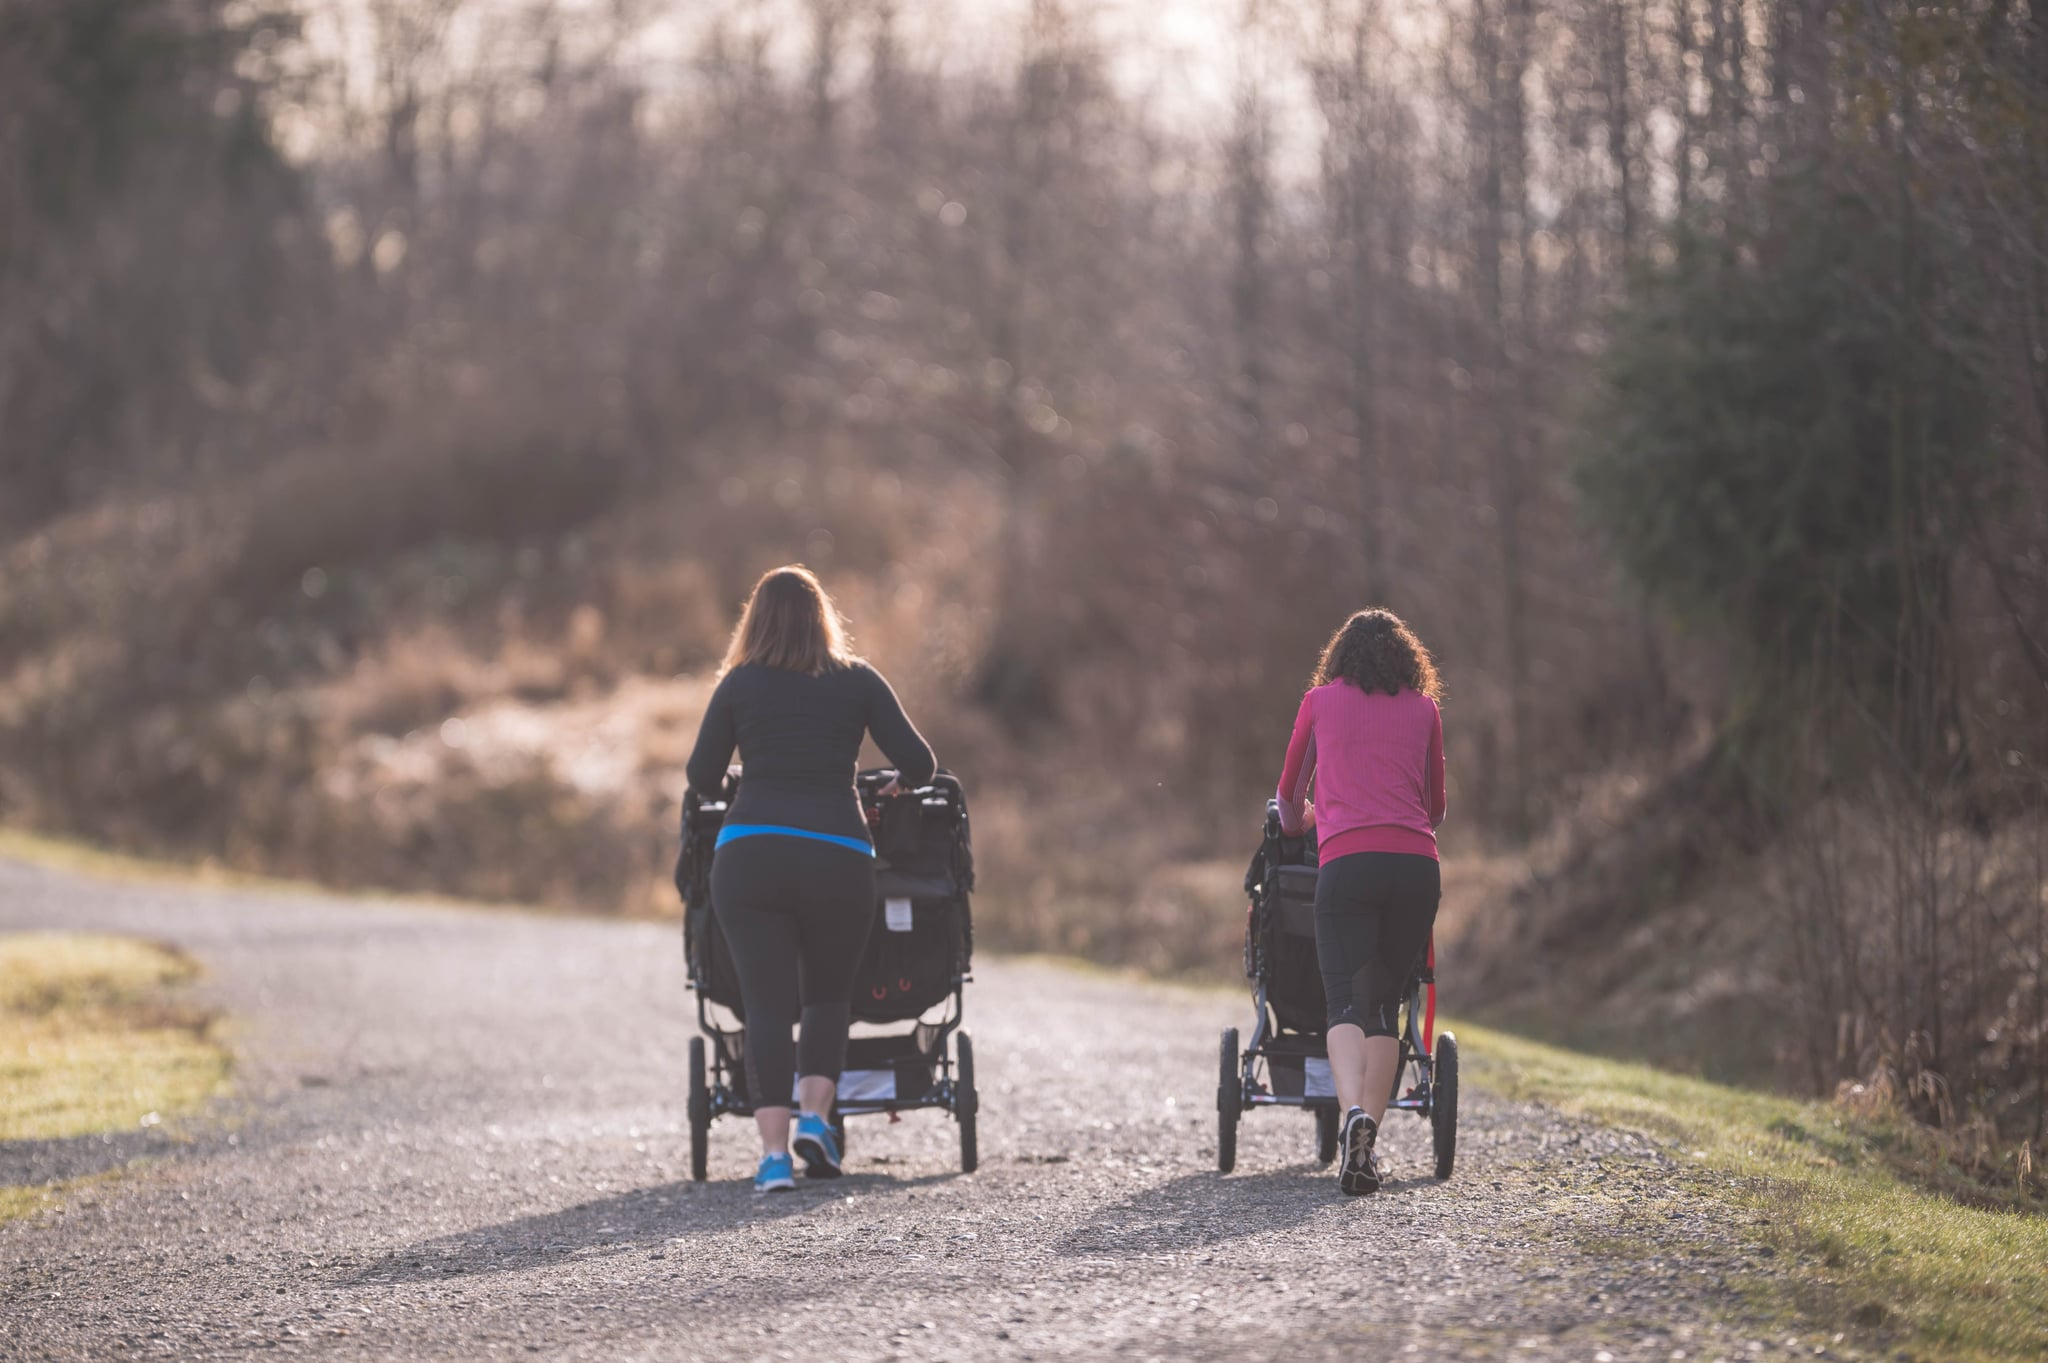 Two mothers push their young children in strollers outside. They're on a pedestrian path surrounded by trees. They are side by side and talking while they get some fresh air and exercise. The shot is from behind.